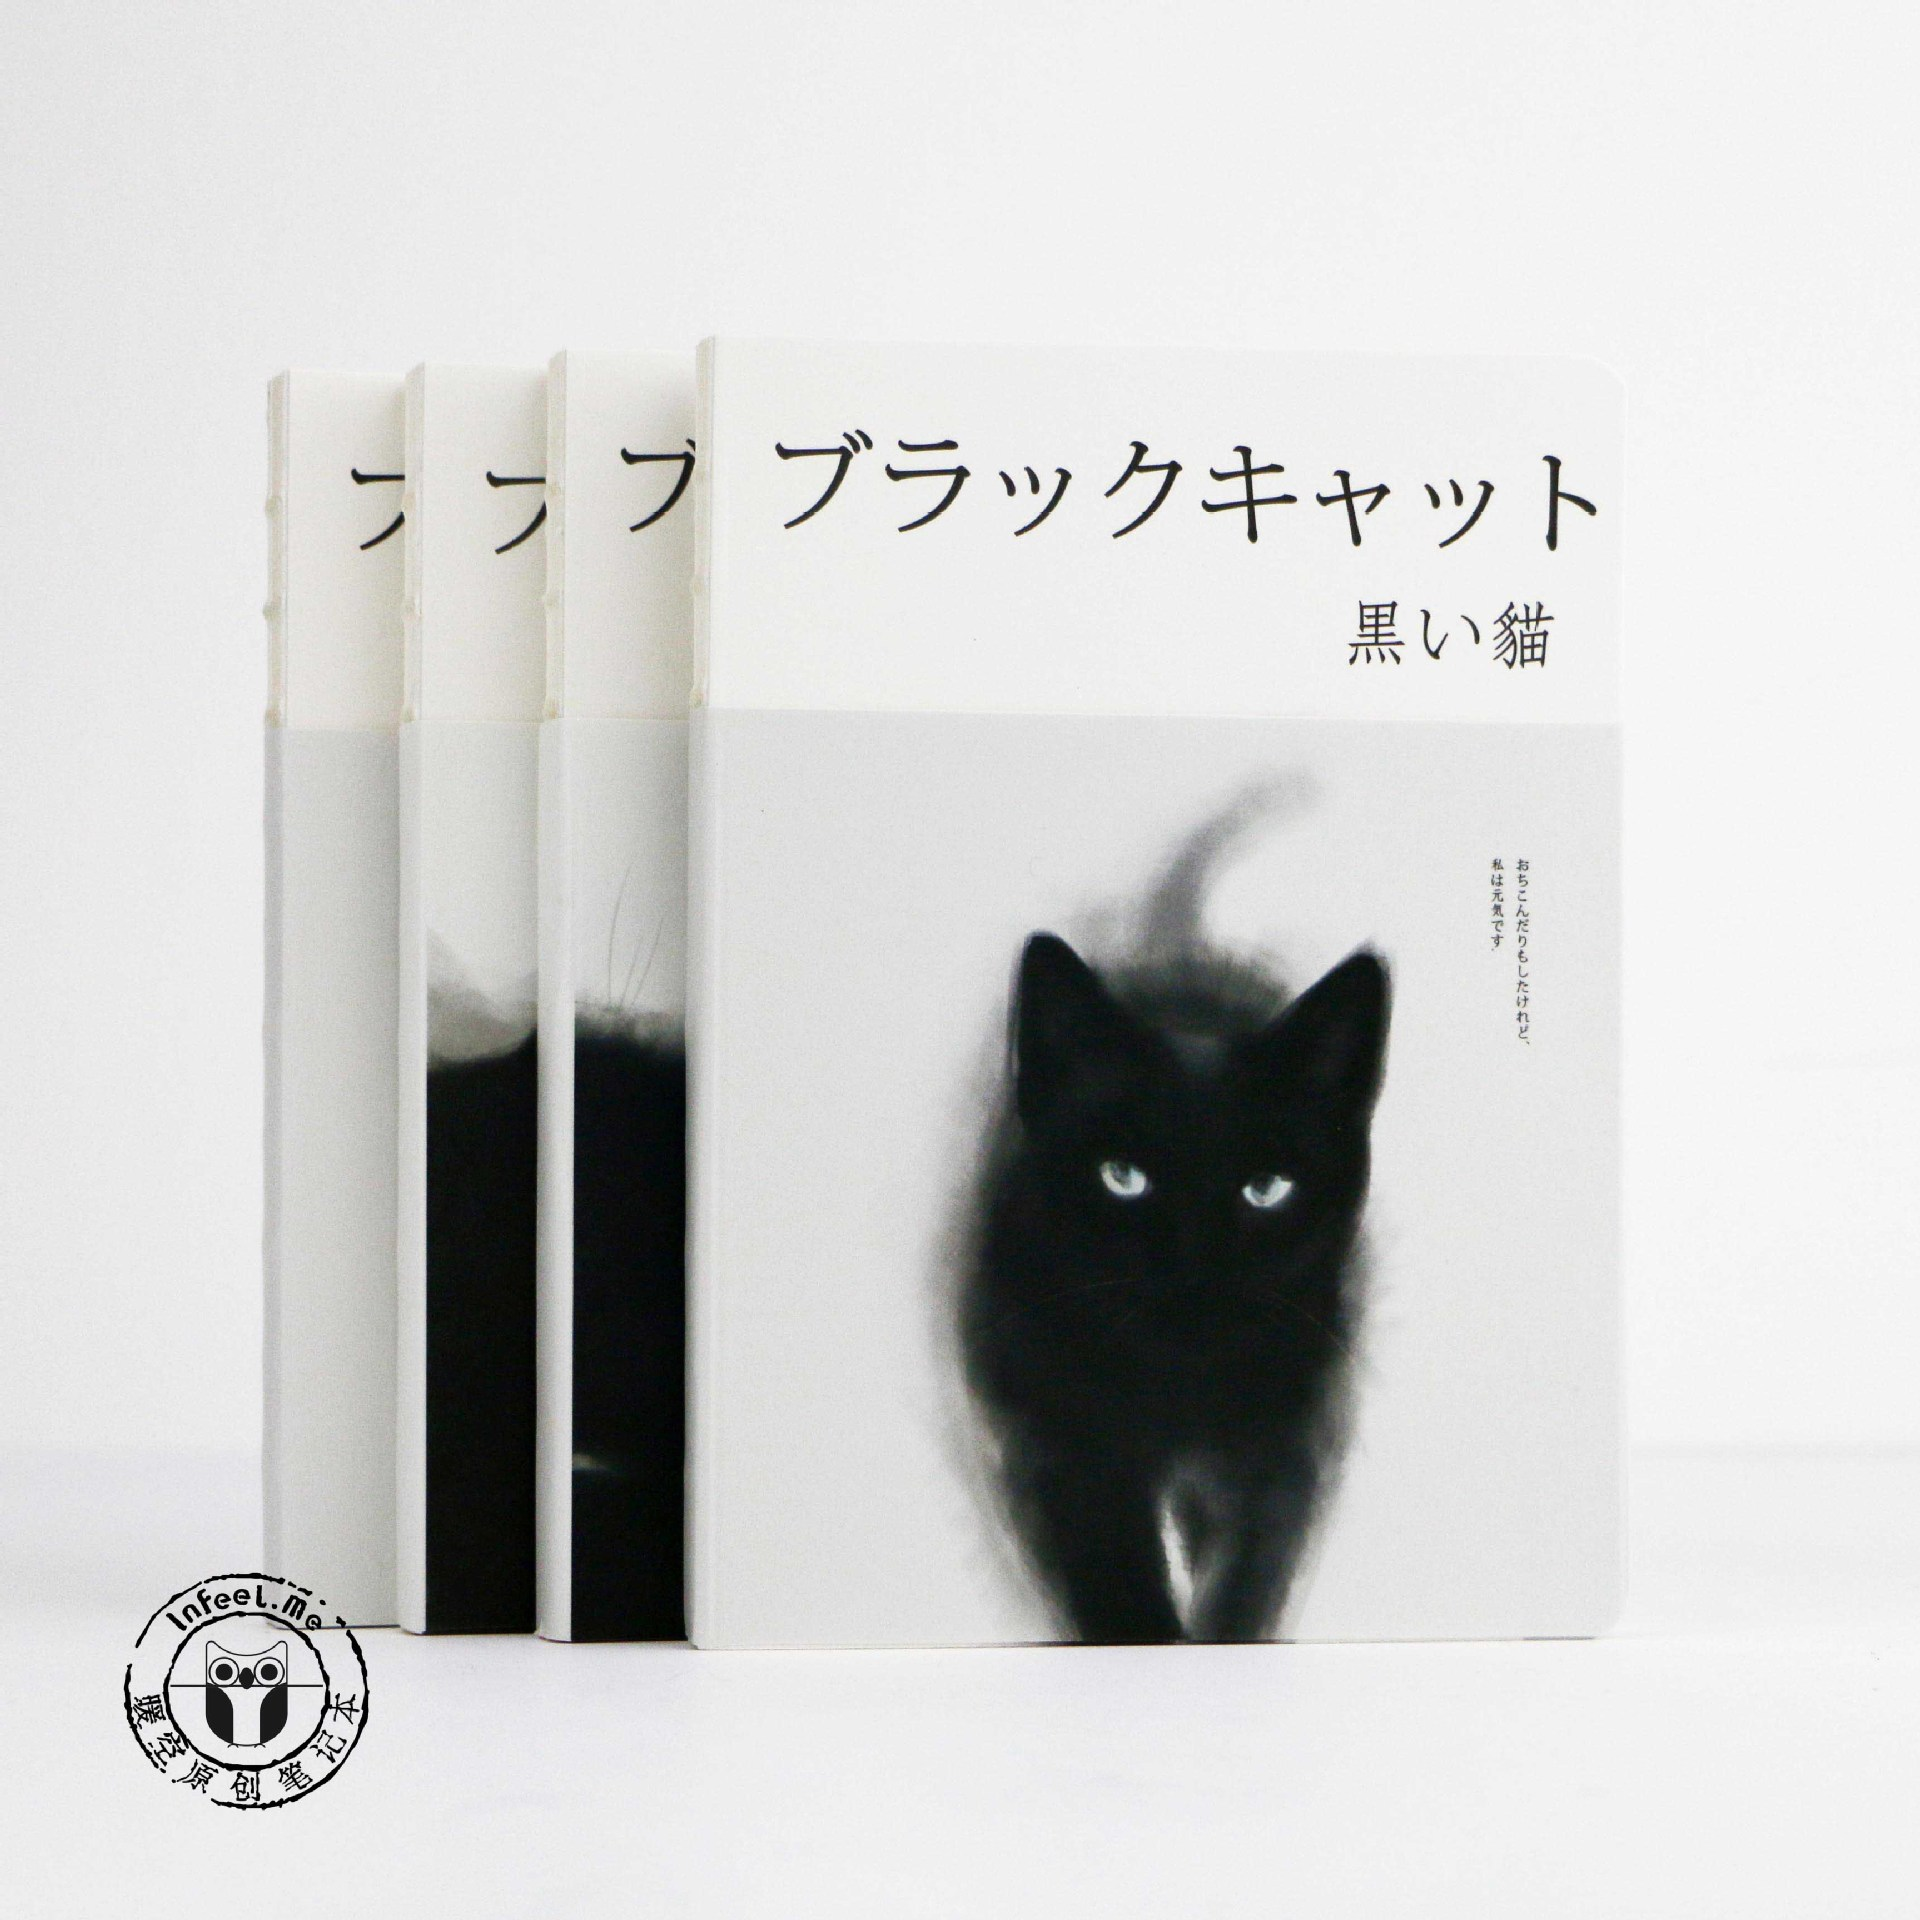 Japanese Stationery Black Cat A5 Notebook Blank Pages Sketchbook Graffiti Drawing Note Book DIY Planner School Supplies caderno sosw fashion anime theme death note cosplay notebook new school large writing journal 20 5cm 14 5cm